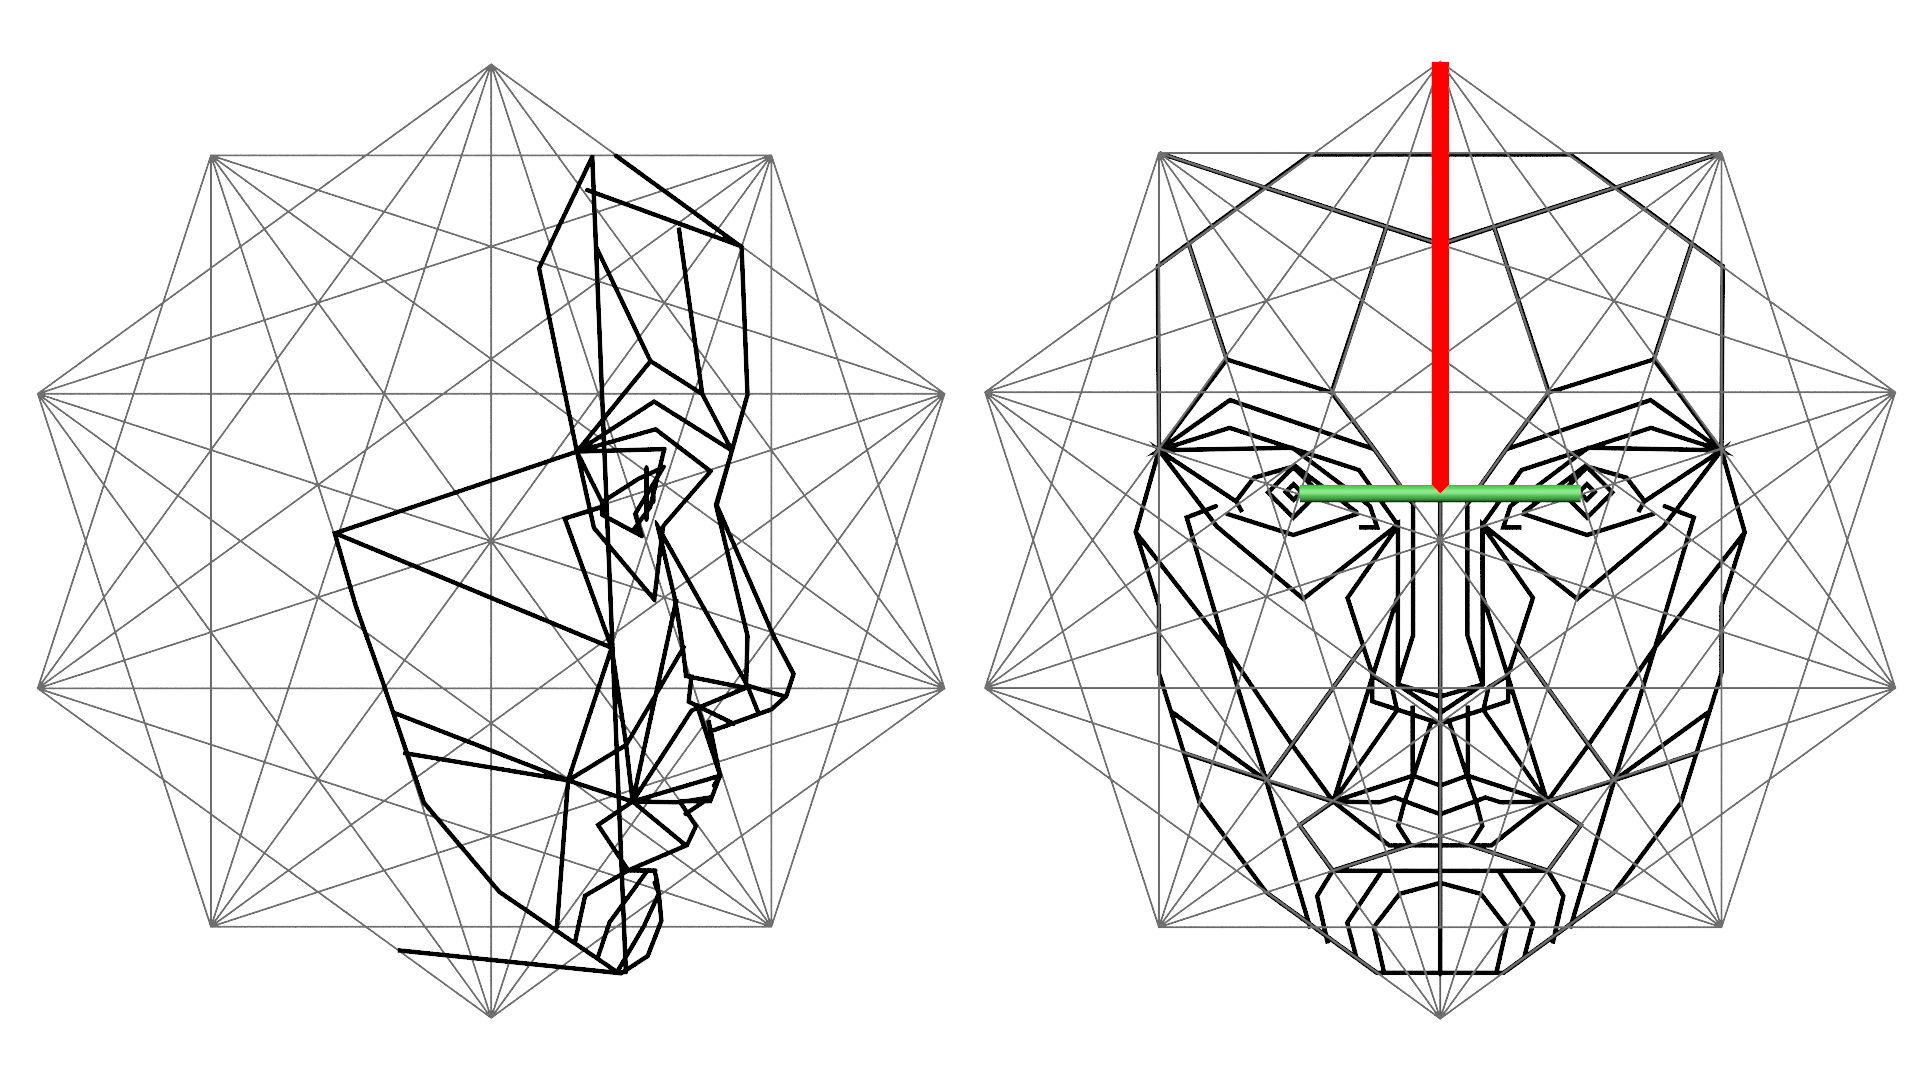 The Golden Ratio in 3D human face modeling